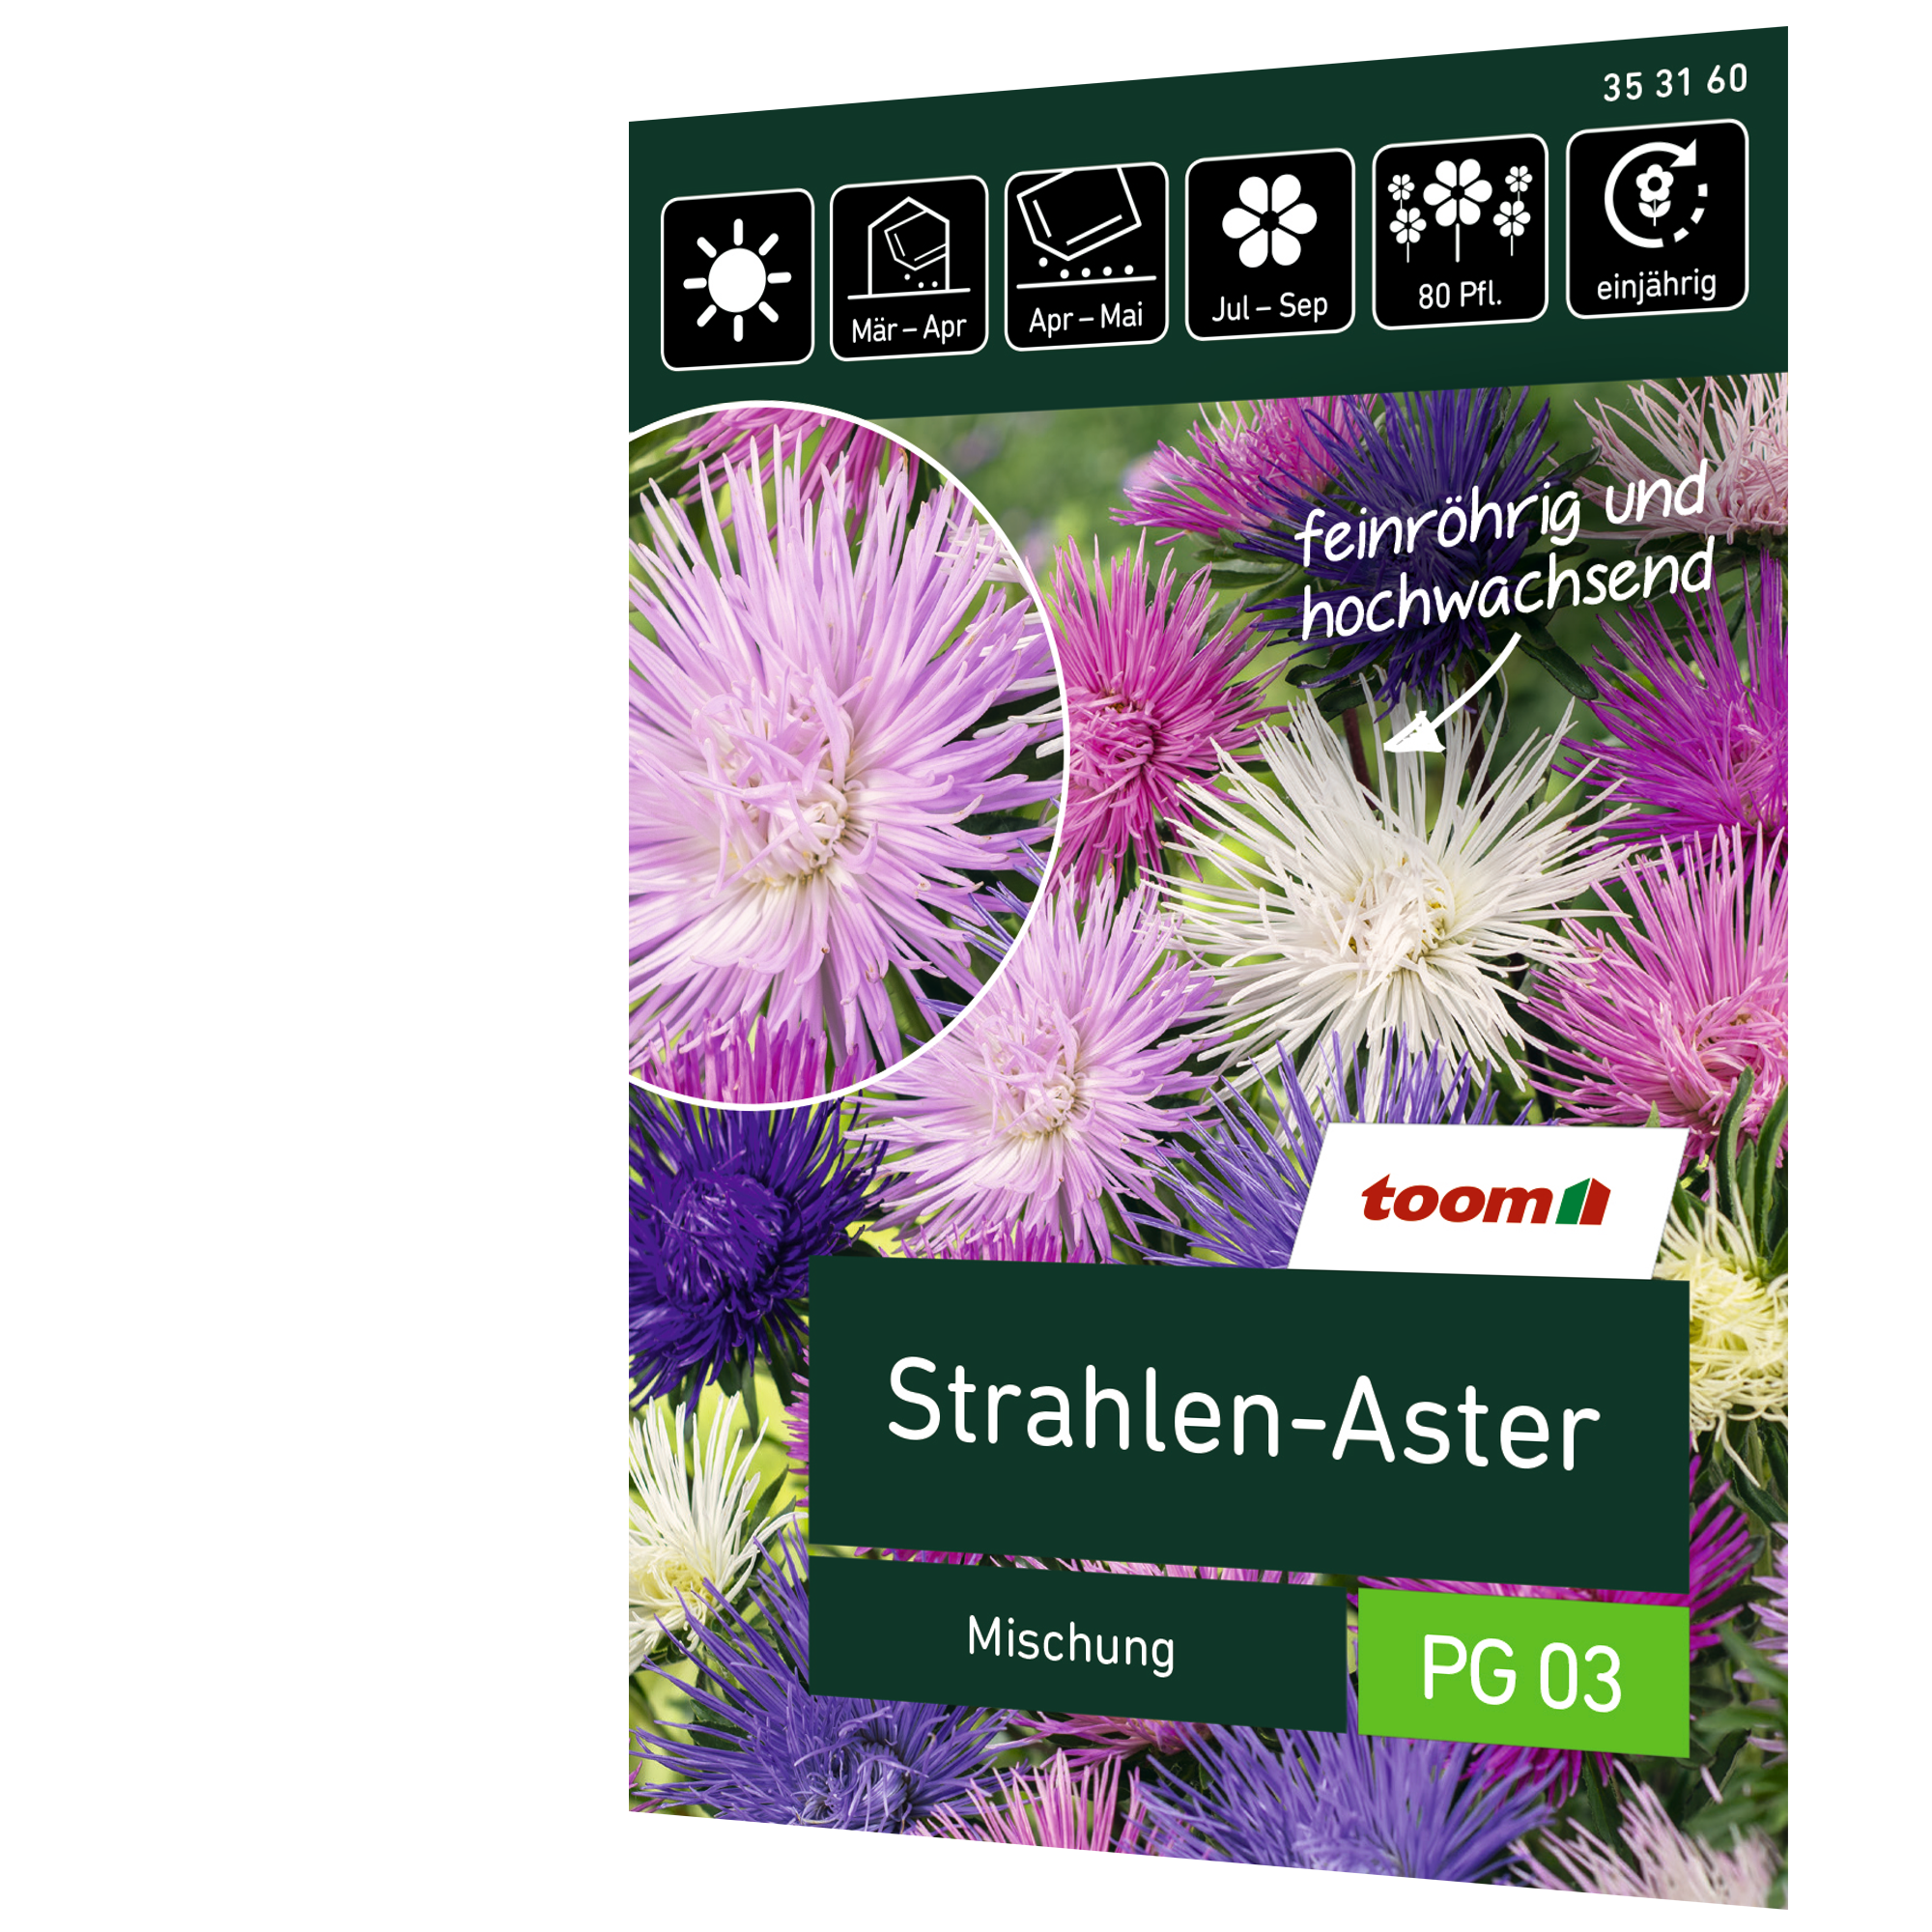 toom Strahlen-Aster 'Mischung'